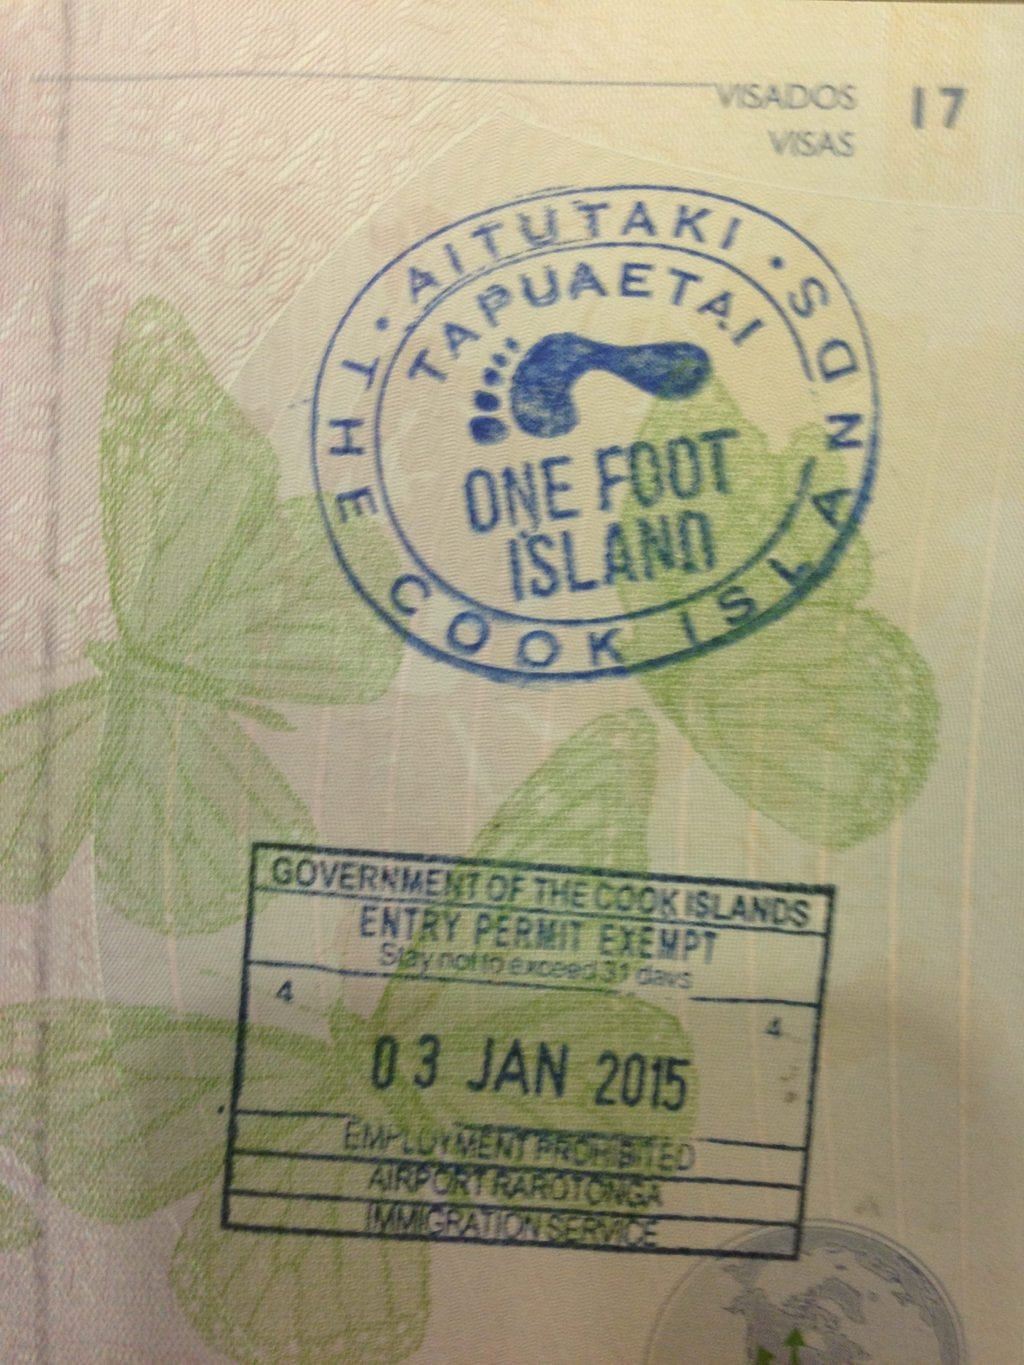 Getting stamped at One Foot Island